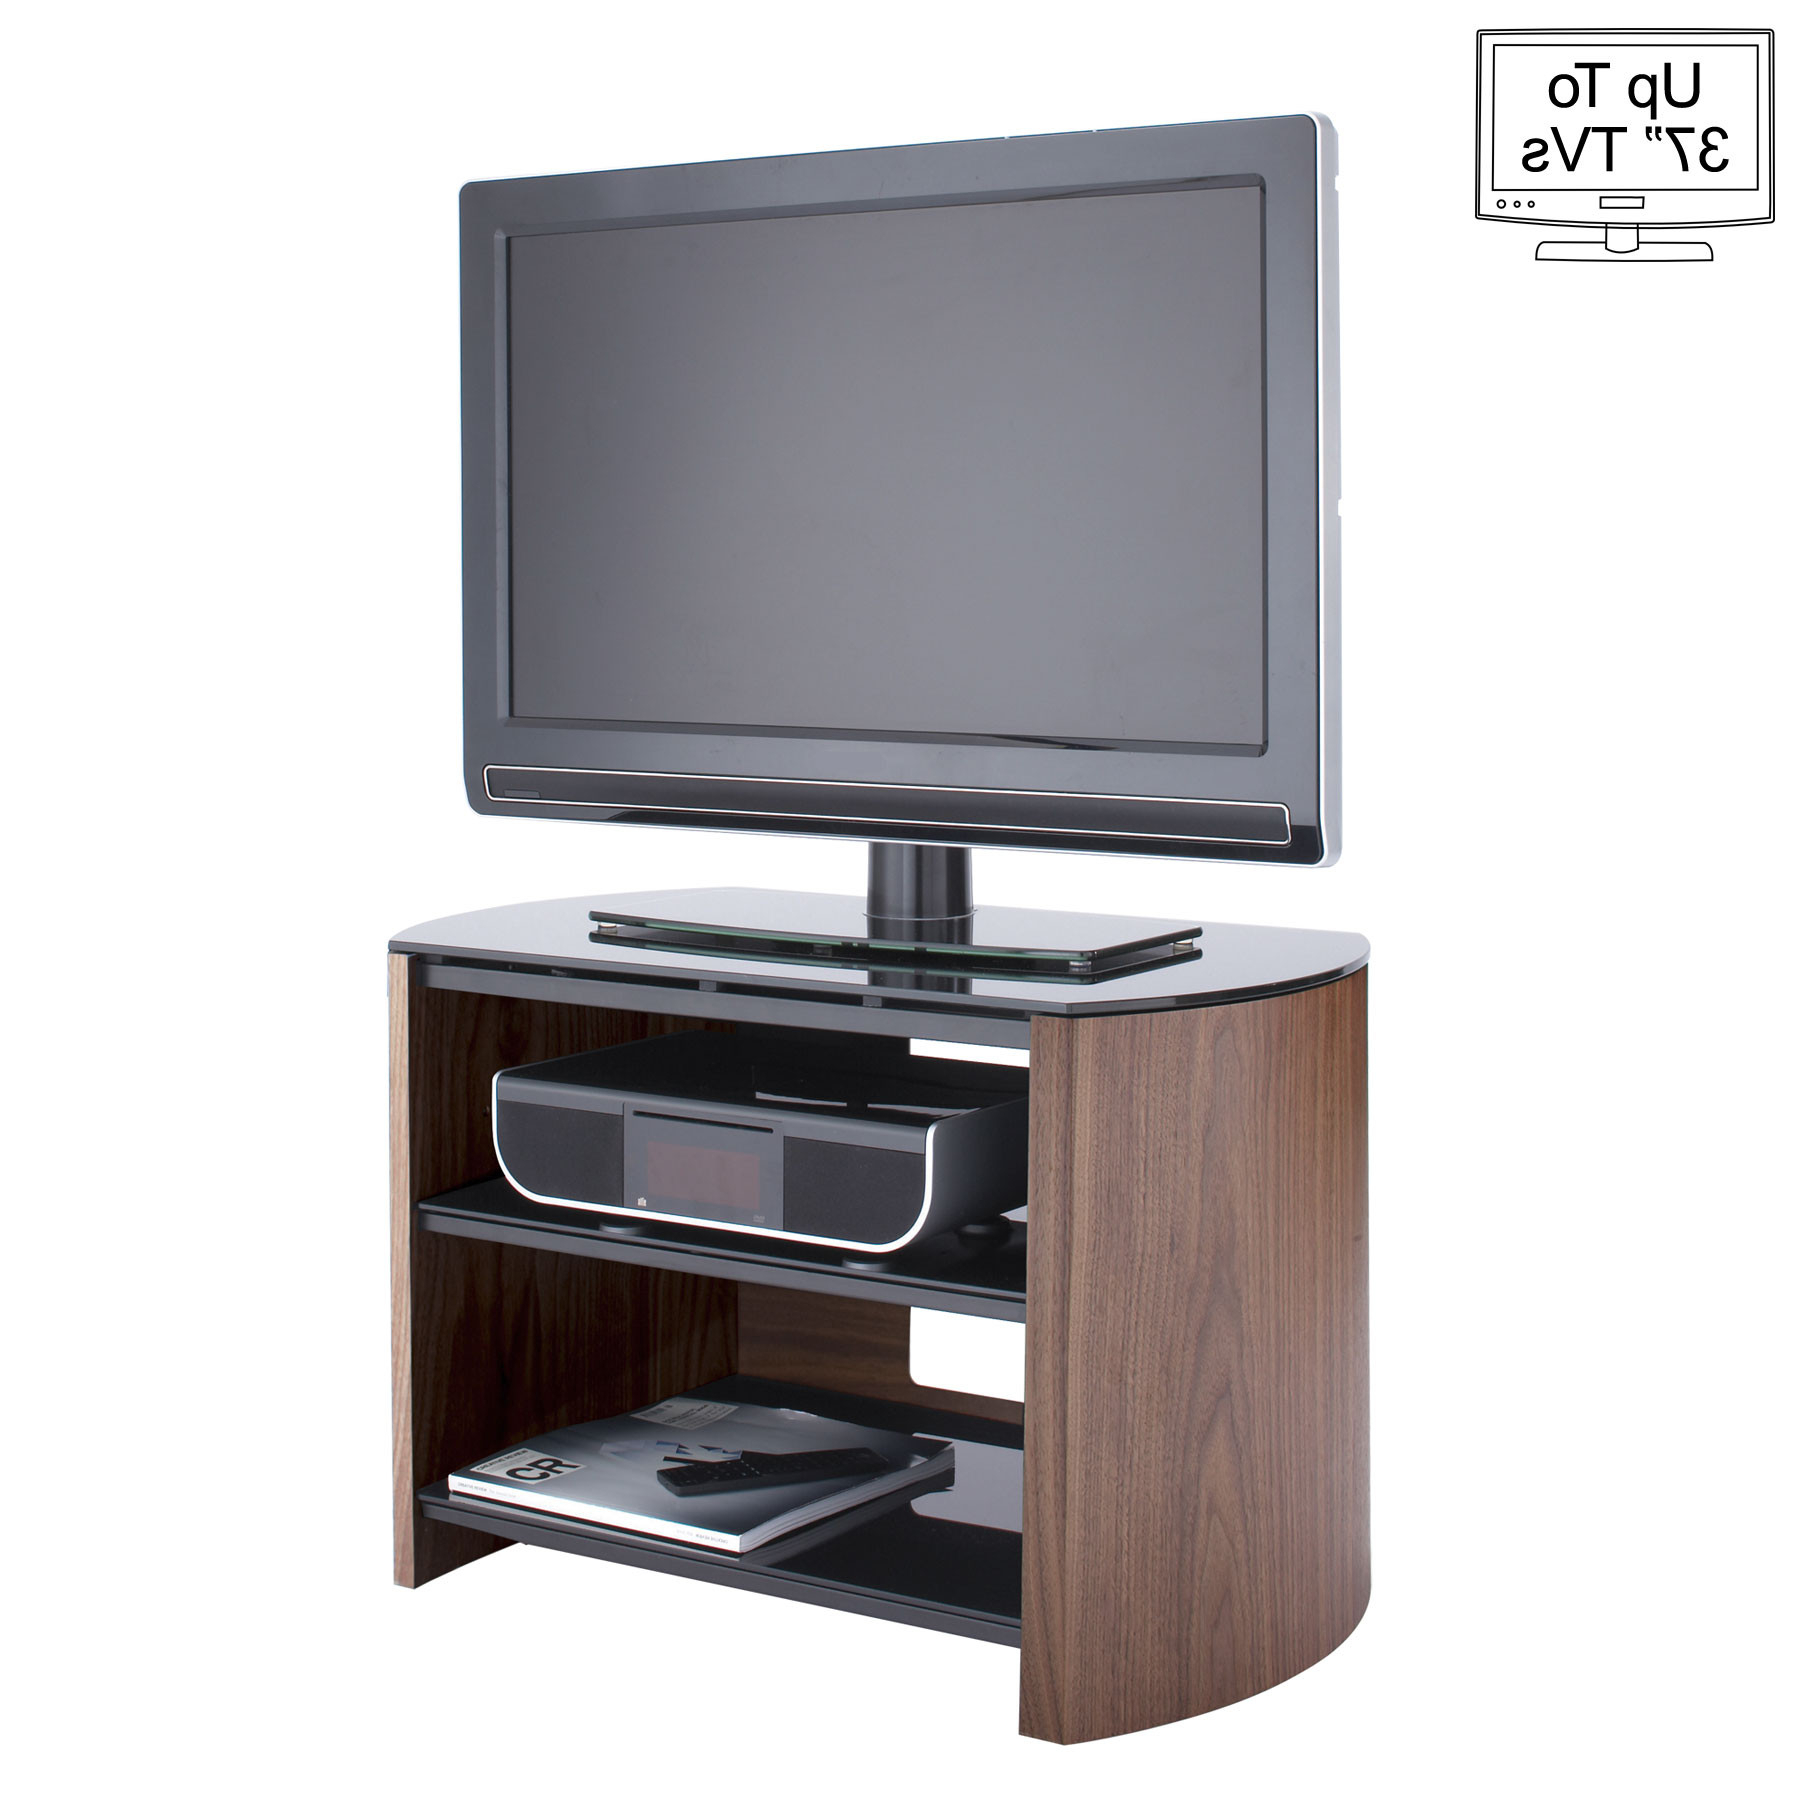 "Most Recent Alphason Finewood 75cm Walnut Tv Stand For Up To 37"" Tvs Regarding Walnut Tv Stands (View 12 of 20)"